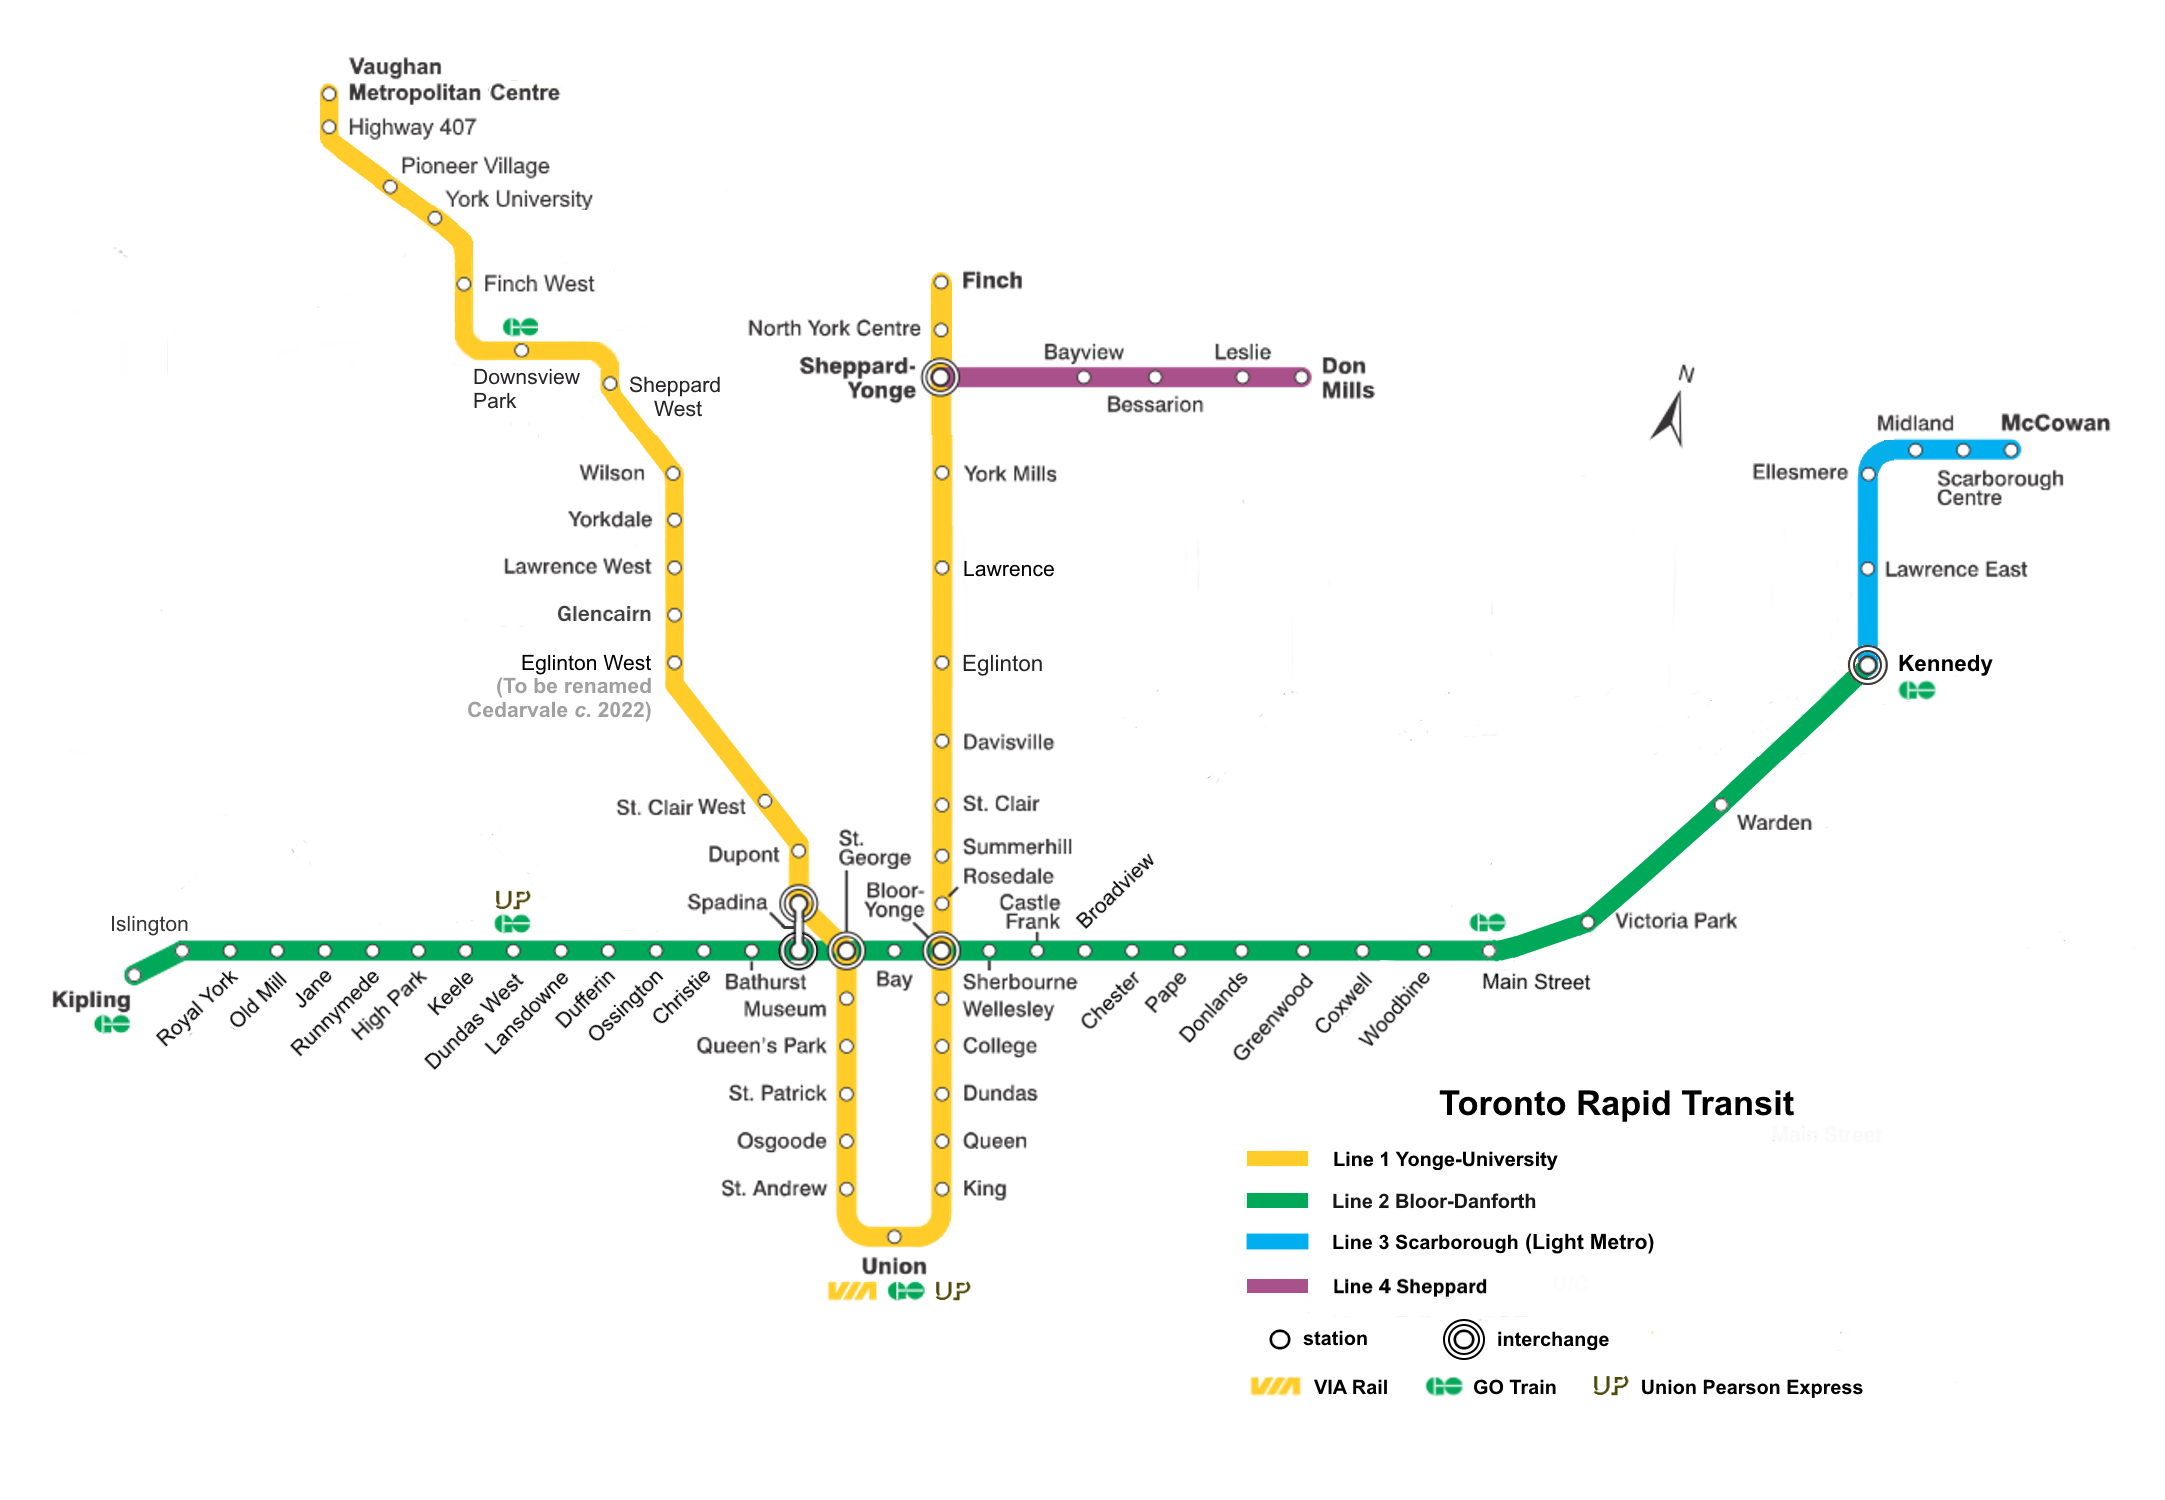 Toronto Subway Map File:TTC subway map 2018.png   Wikimedia Commons Toronto Subway Map